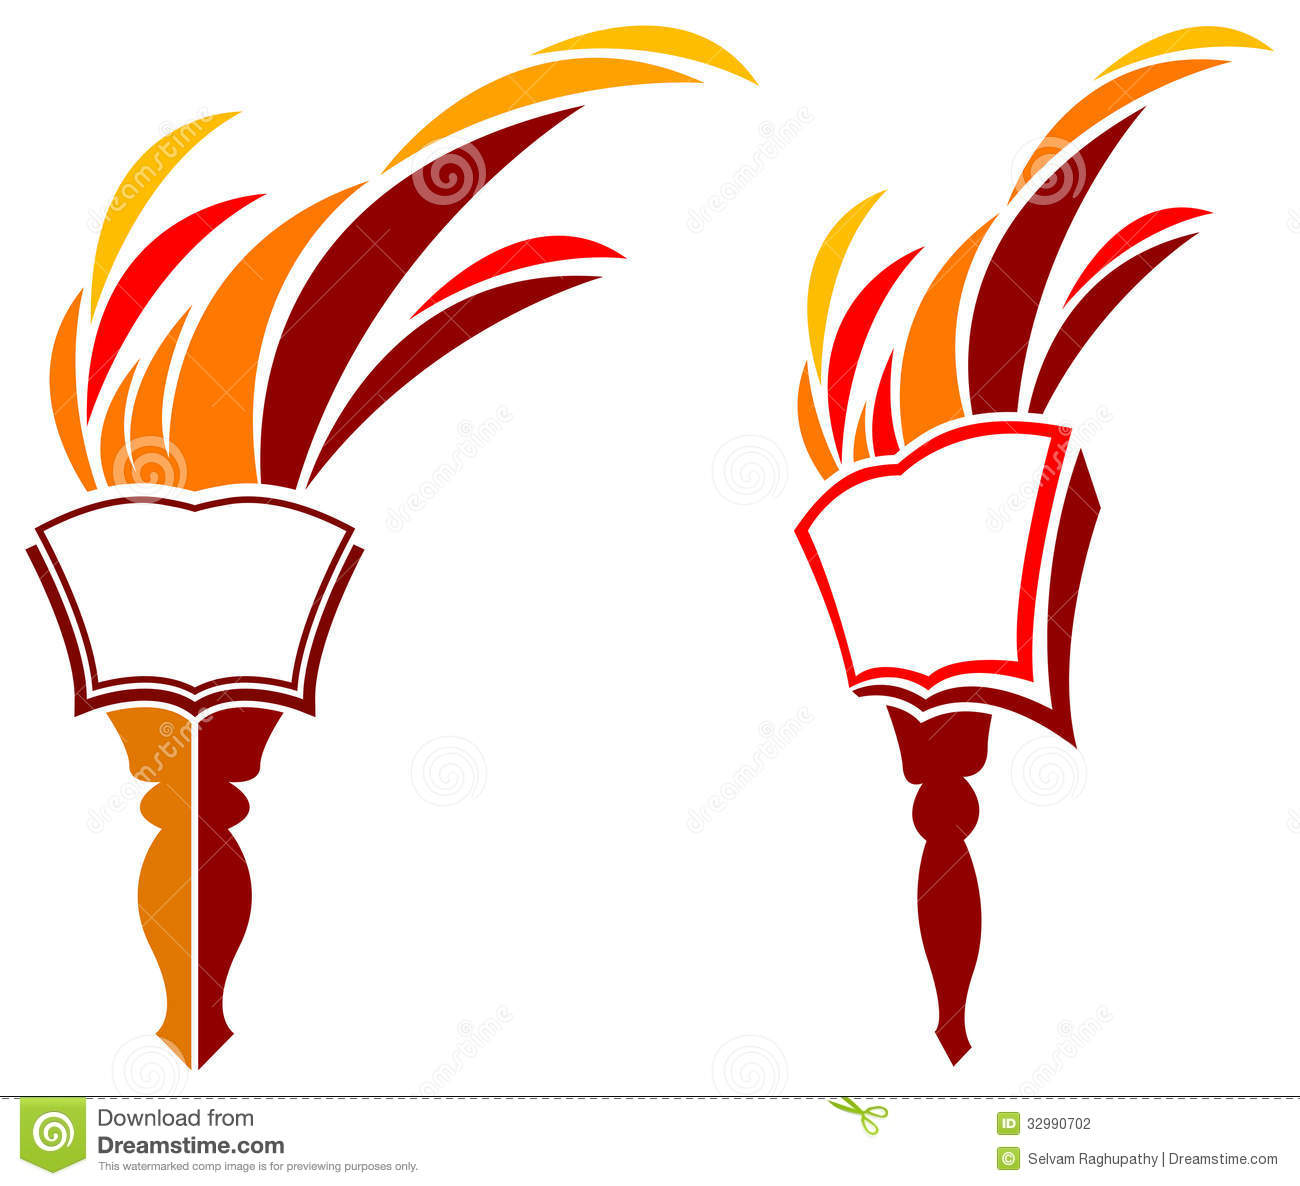 Of . Knowledge clipart torch knowledge